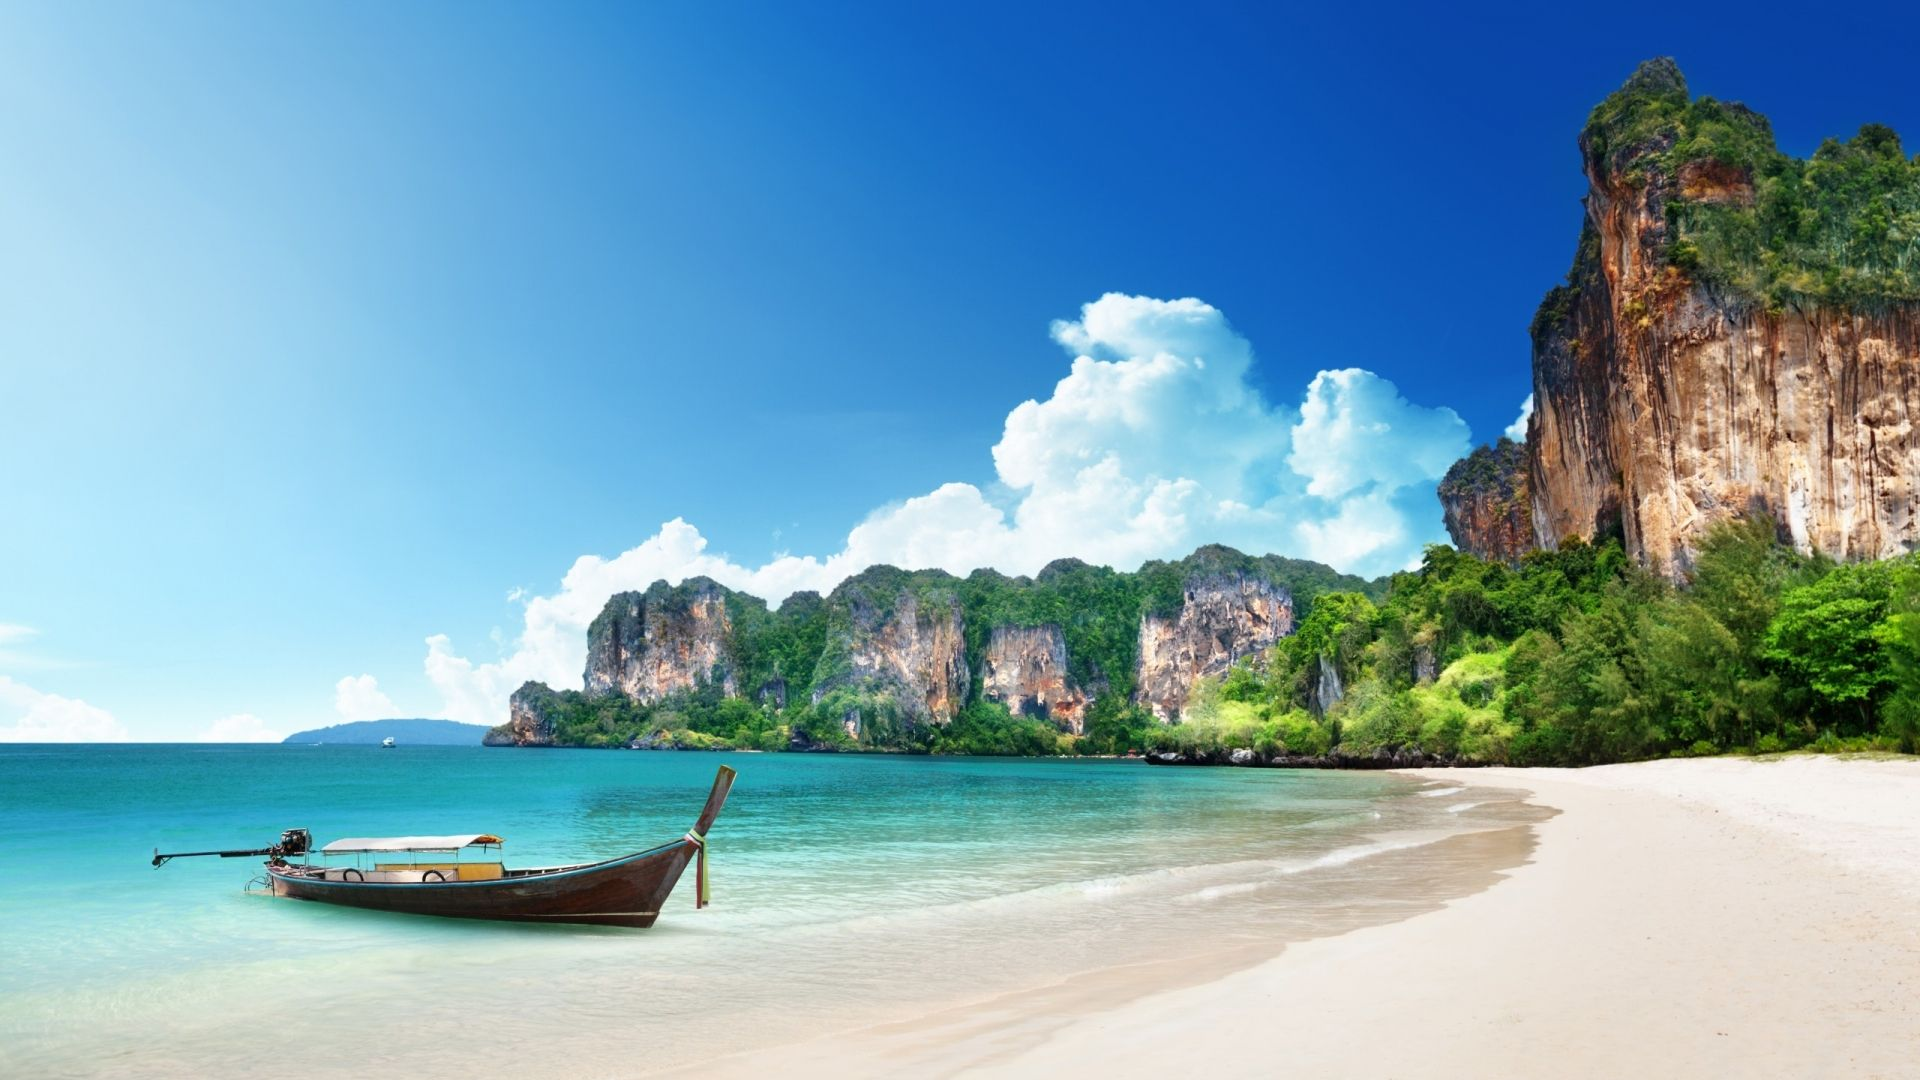 Beach Corner From Paradise For 1920 X 1080 Hdtv 1080p Resolution Krabi Beach Beaches In The World Railay Beach